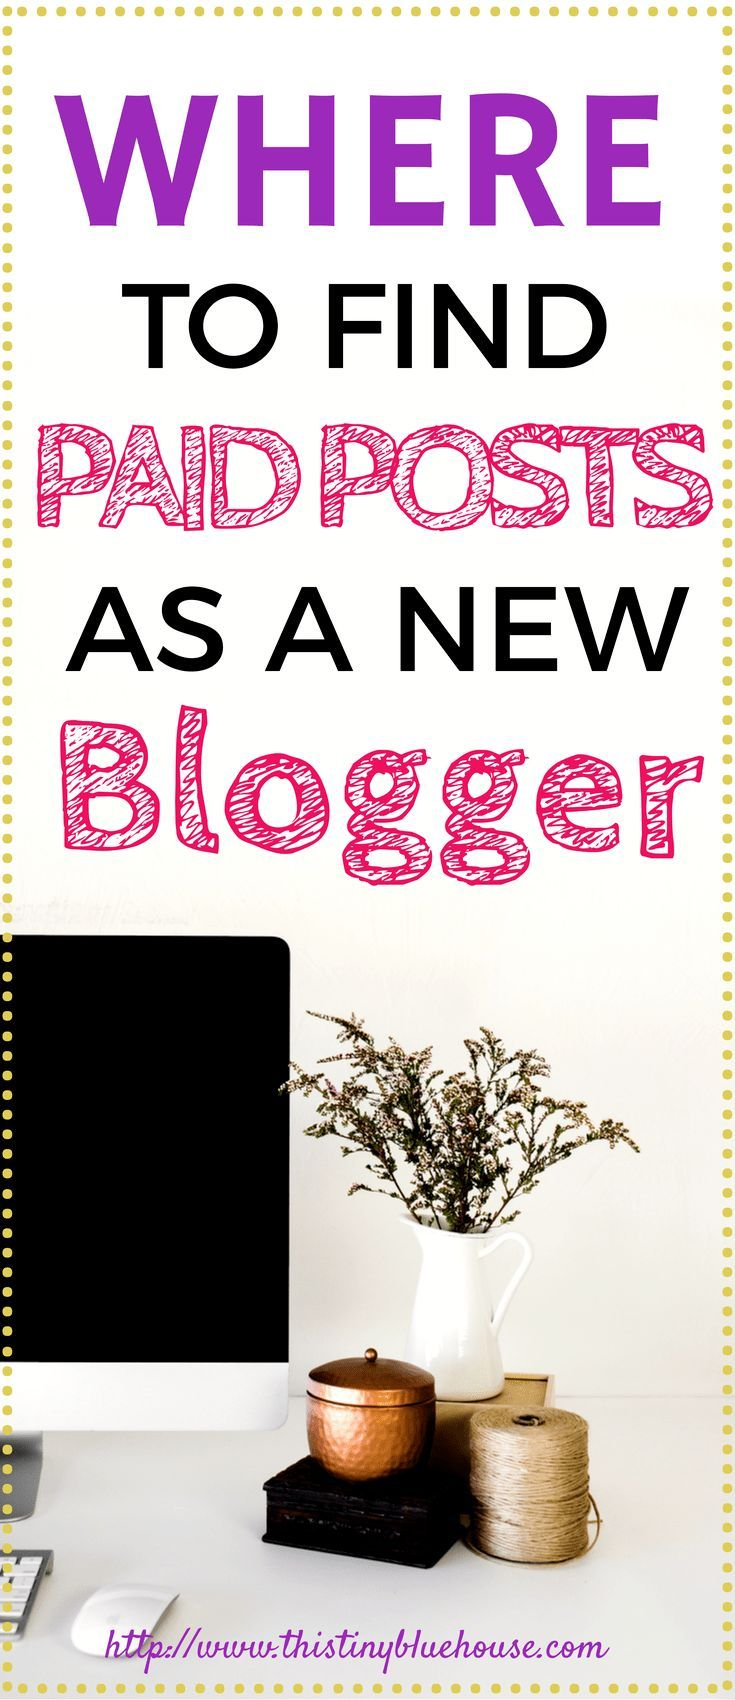 Blogwriting about blogwriting